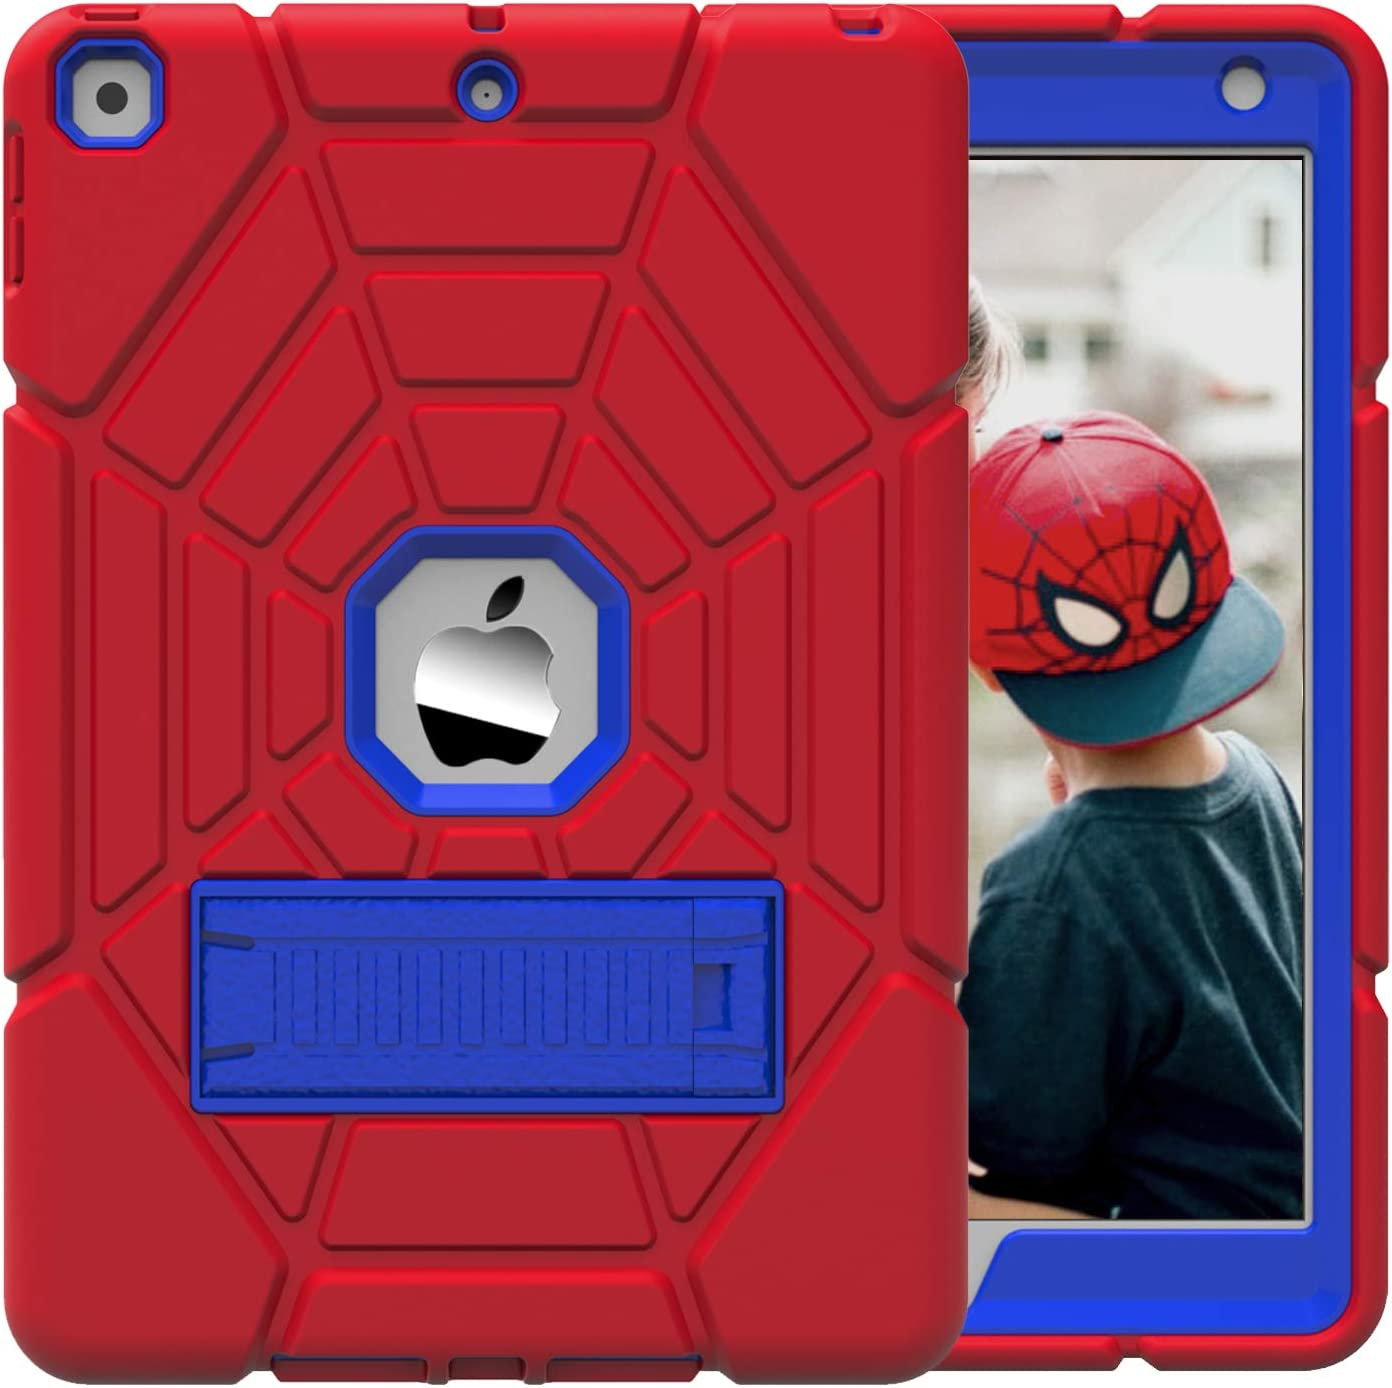 Grifobes Kids Case for New iPad 10.2 2020/2019 - iPad 8th/7th Generation Case for Kids,Heavy Duty Shockproof Rugged Case High Impact Full Body Protective Cover for iPad 8th/ 7th Gen 10.2